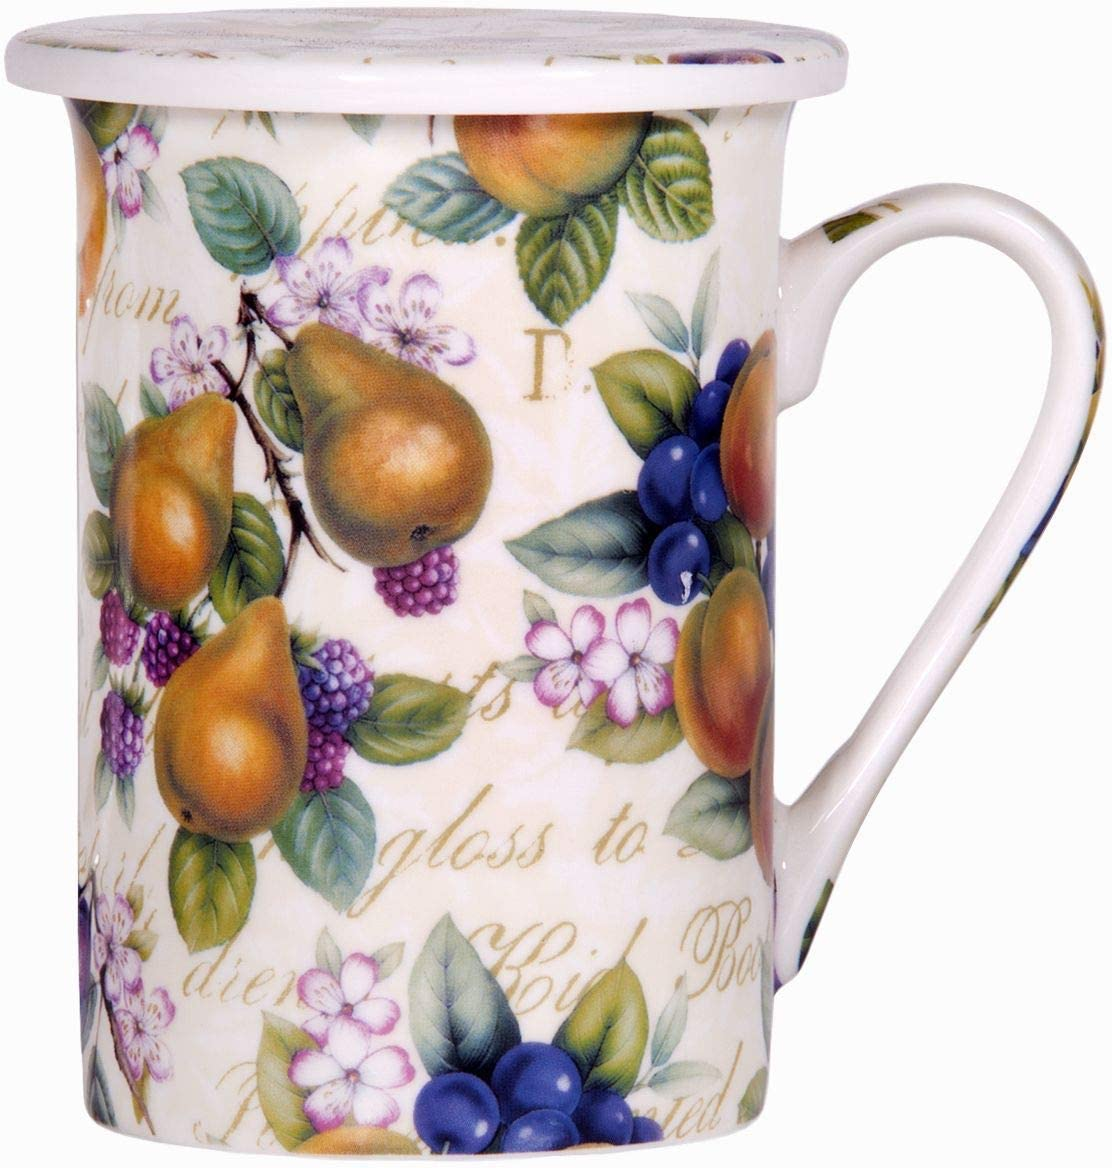 Home Essentials Kent Potteries Tea Cup Mug & Coaster Calco Fruit 2 pc 10 oz,